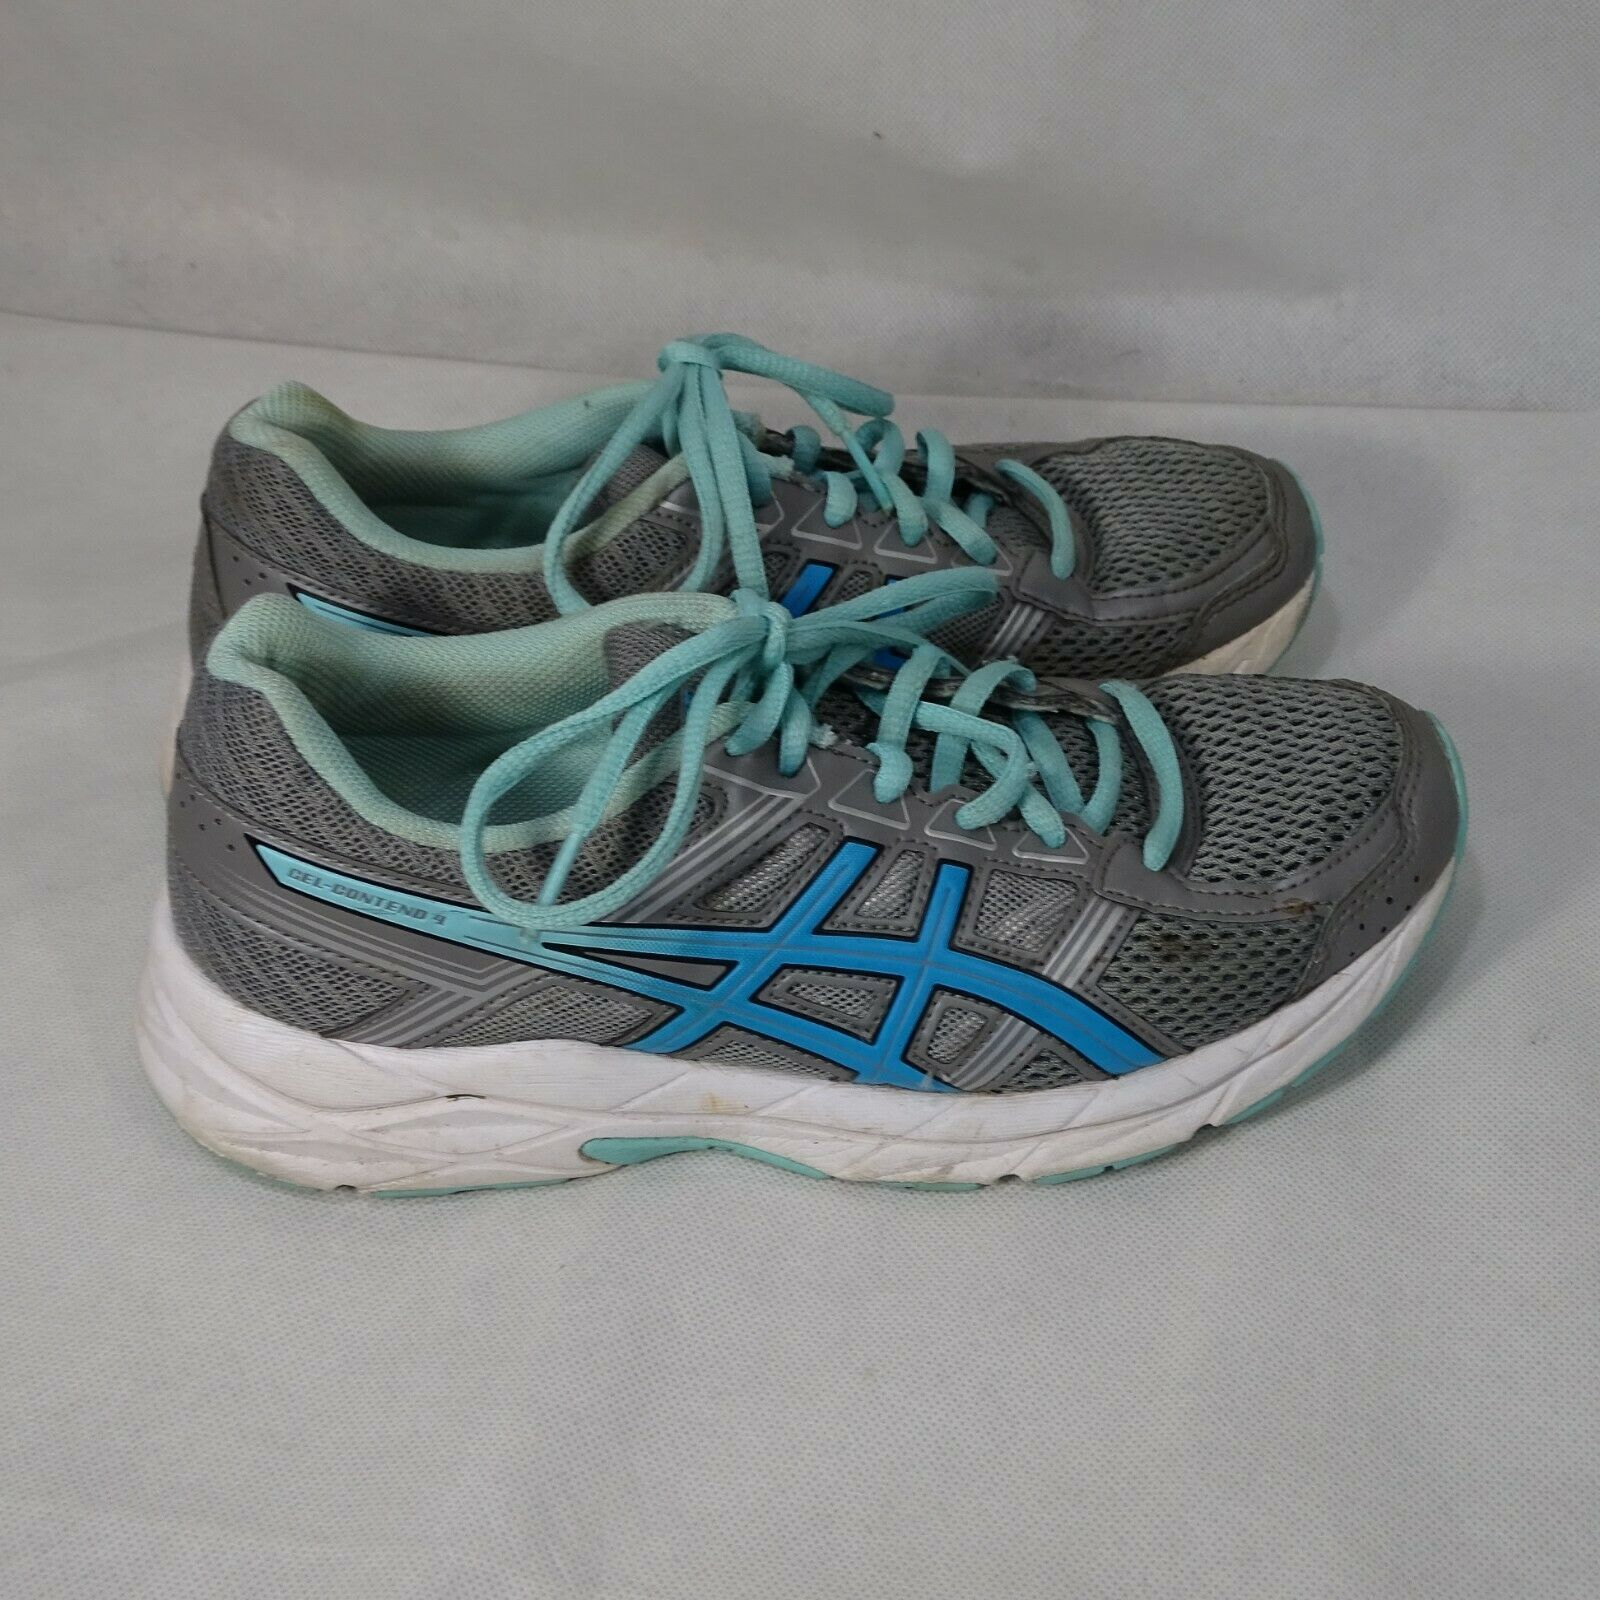 Asics Gel-Contend 4 Ortholite Sneakers Shoes Mesh Women Size 7 Gray Blue T767Q image 2